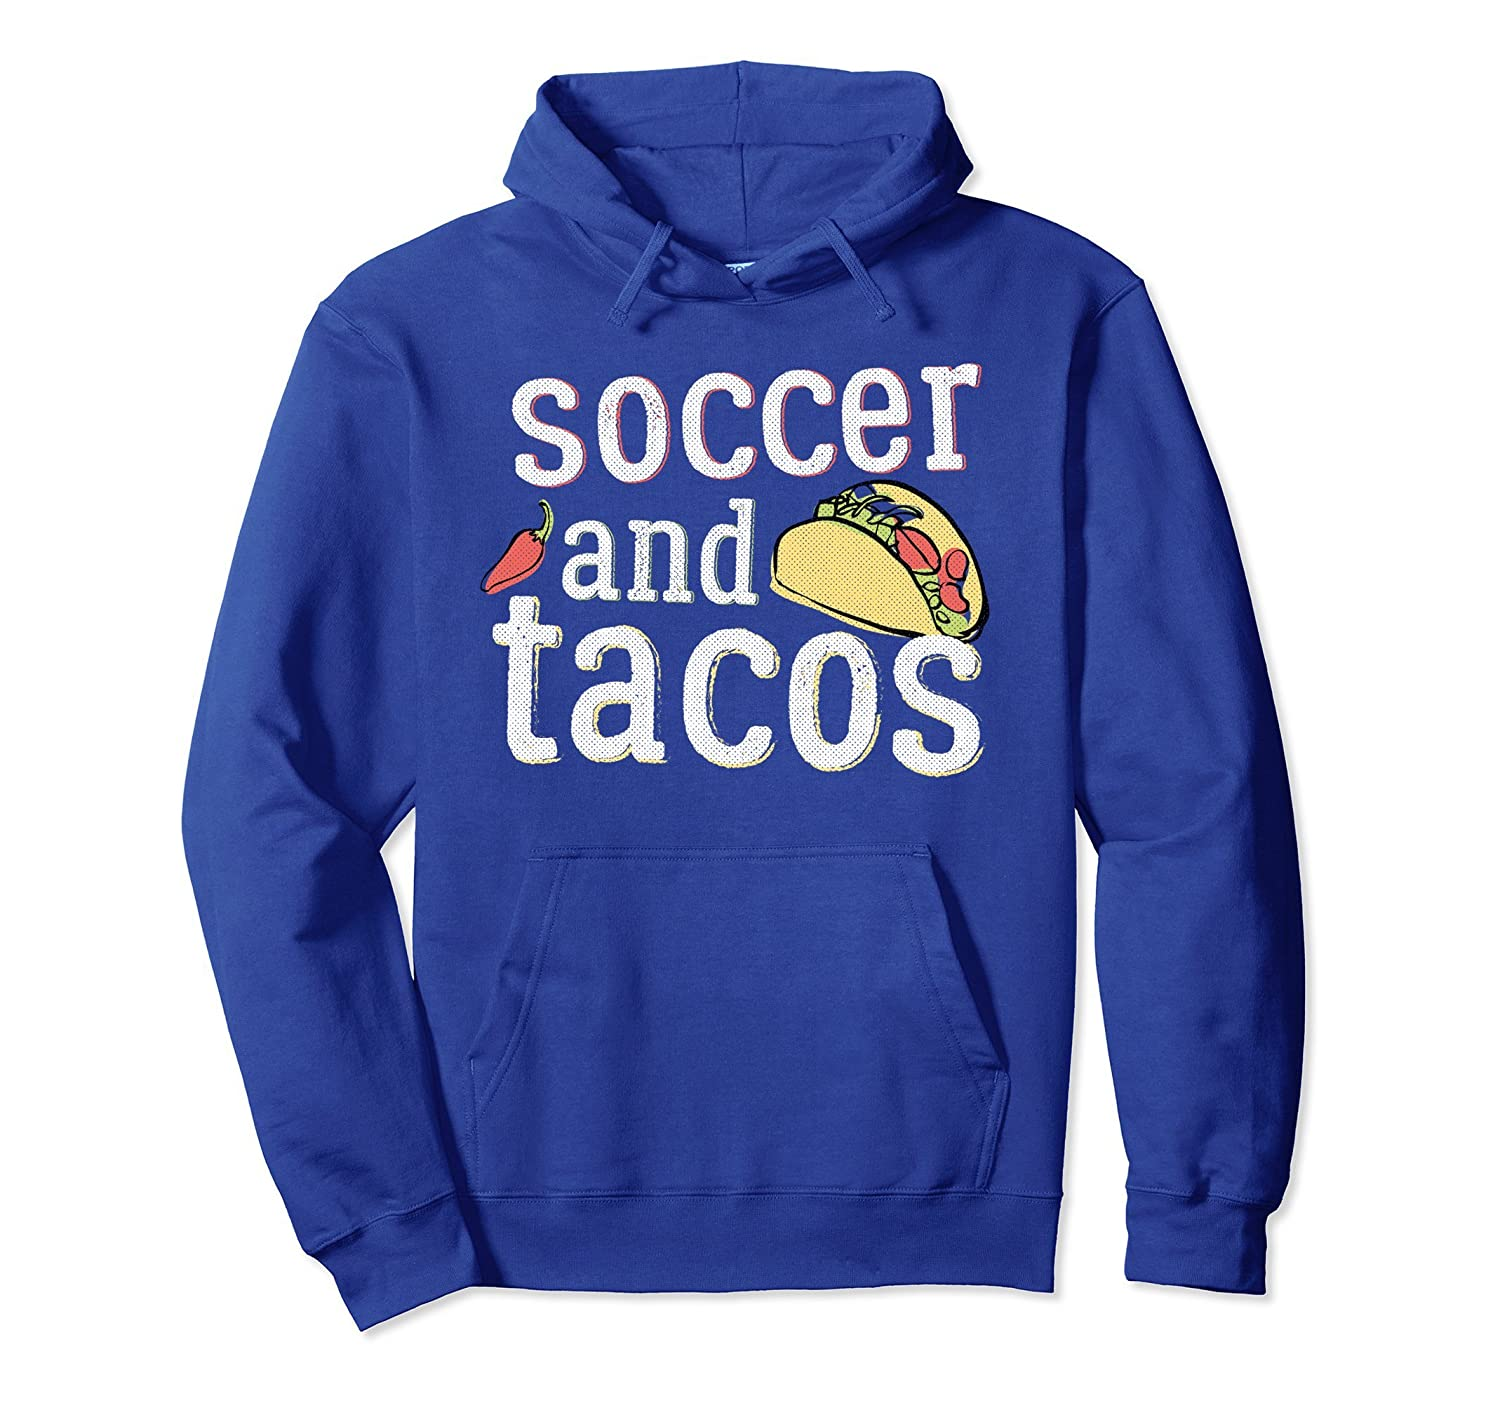 Tacos Soccer Hoodie for Futball, Funny Gift, White-alottee gift